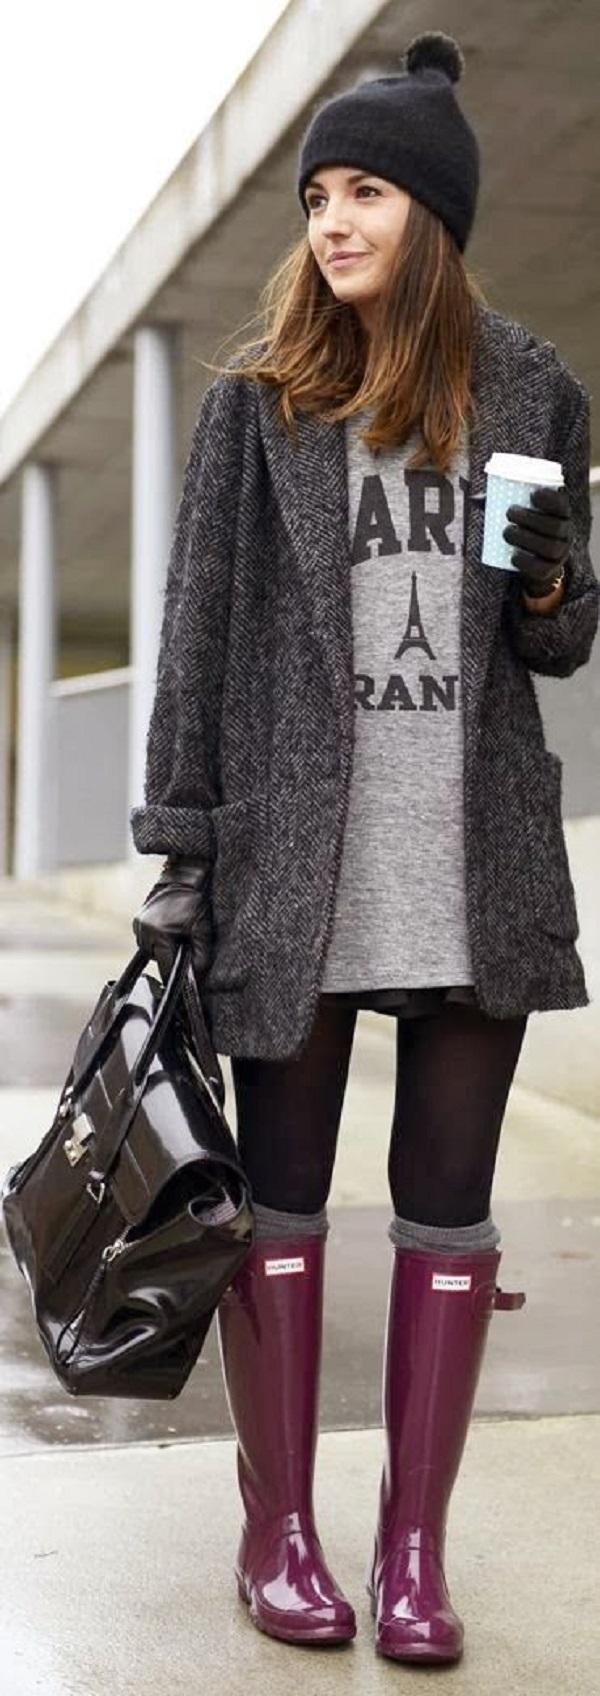 Warm long coat with grey sweater, Hunter purple boots and pure black leather handbag. I call that Winter casual